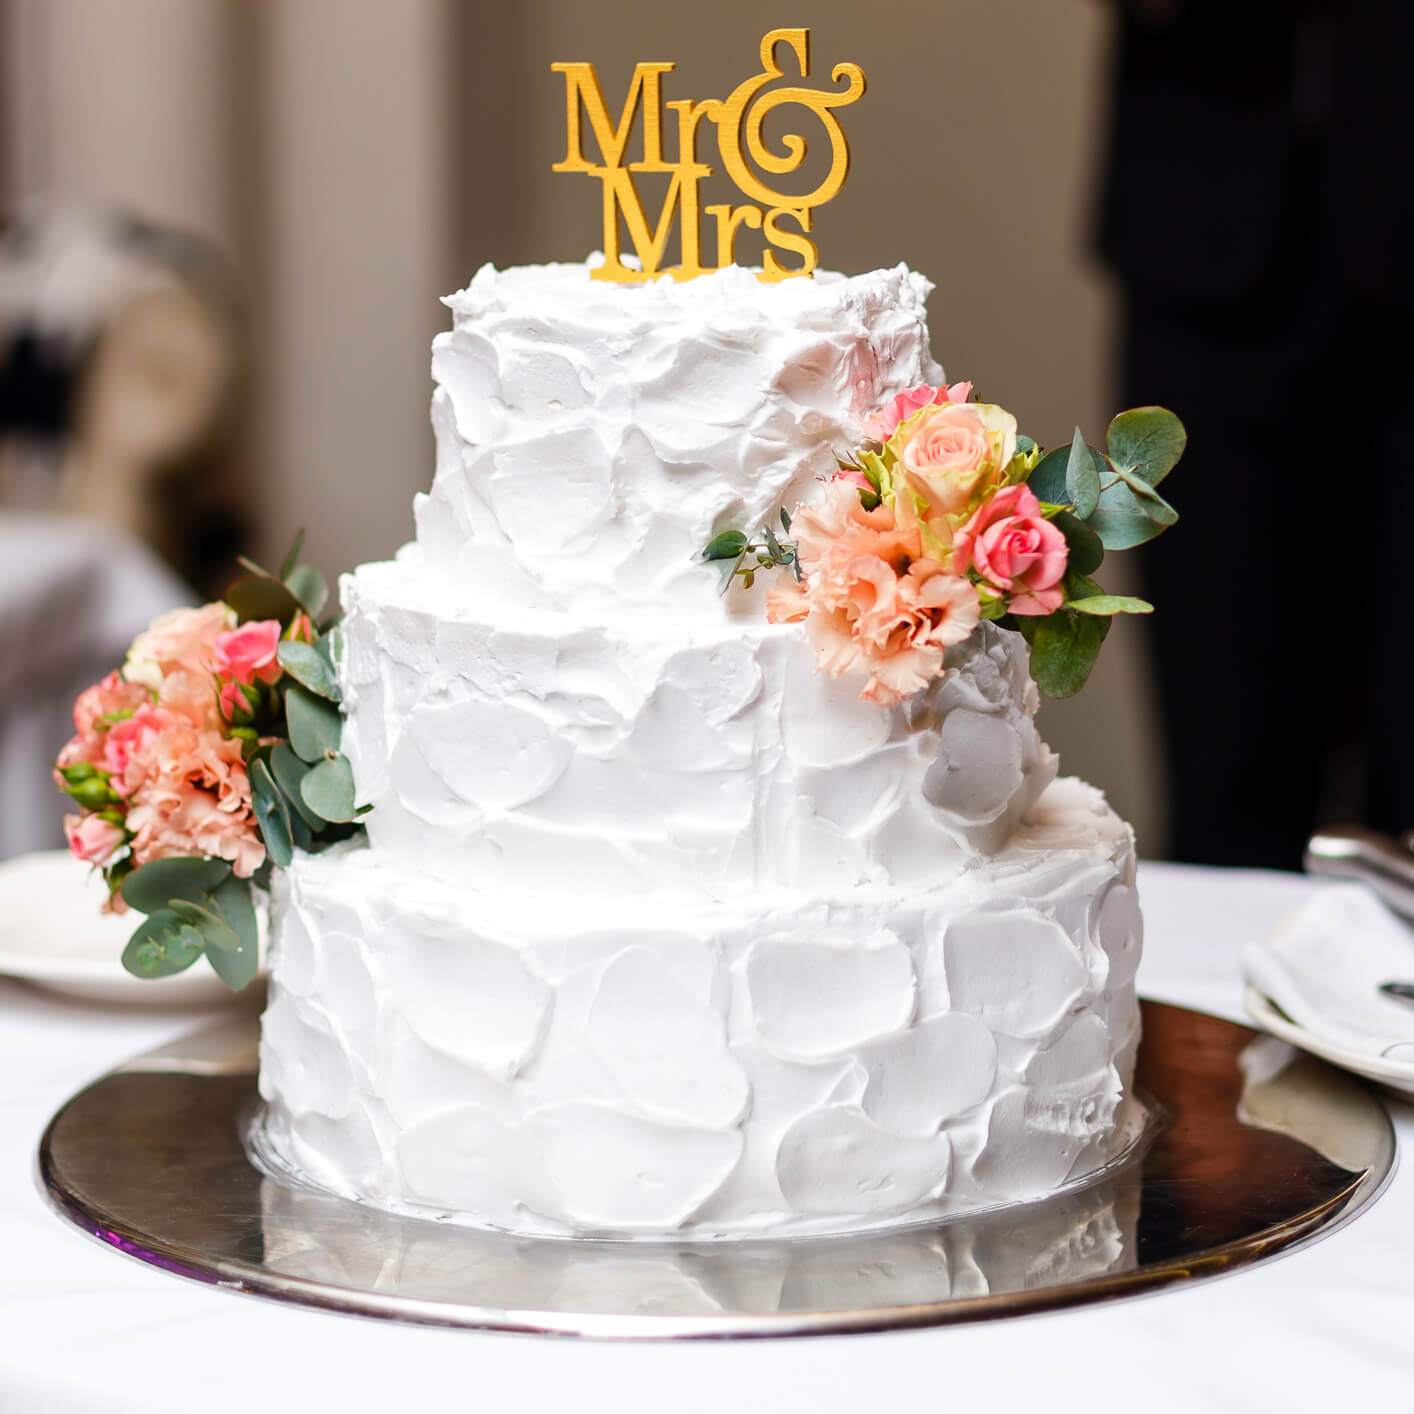 1-three-tier-wedding-cakes.jpg